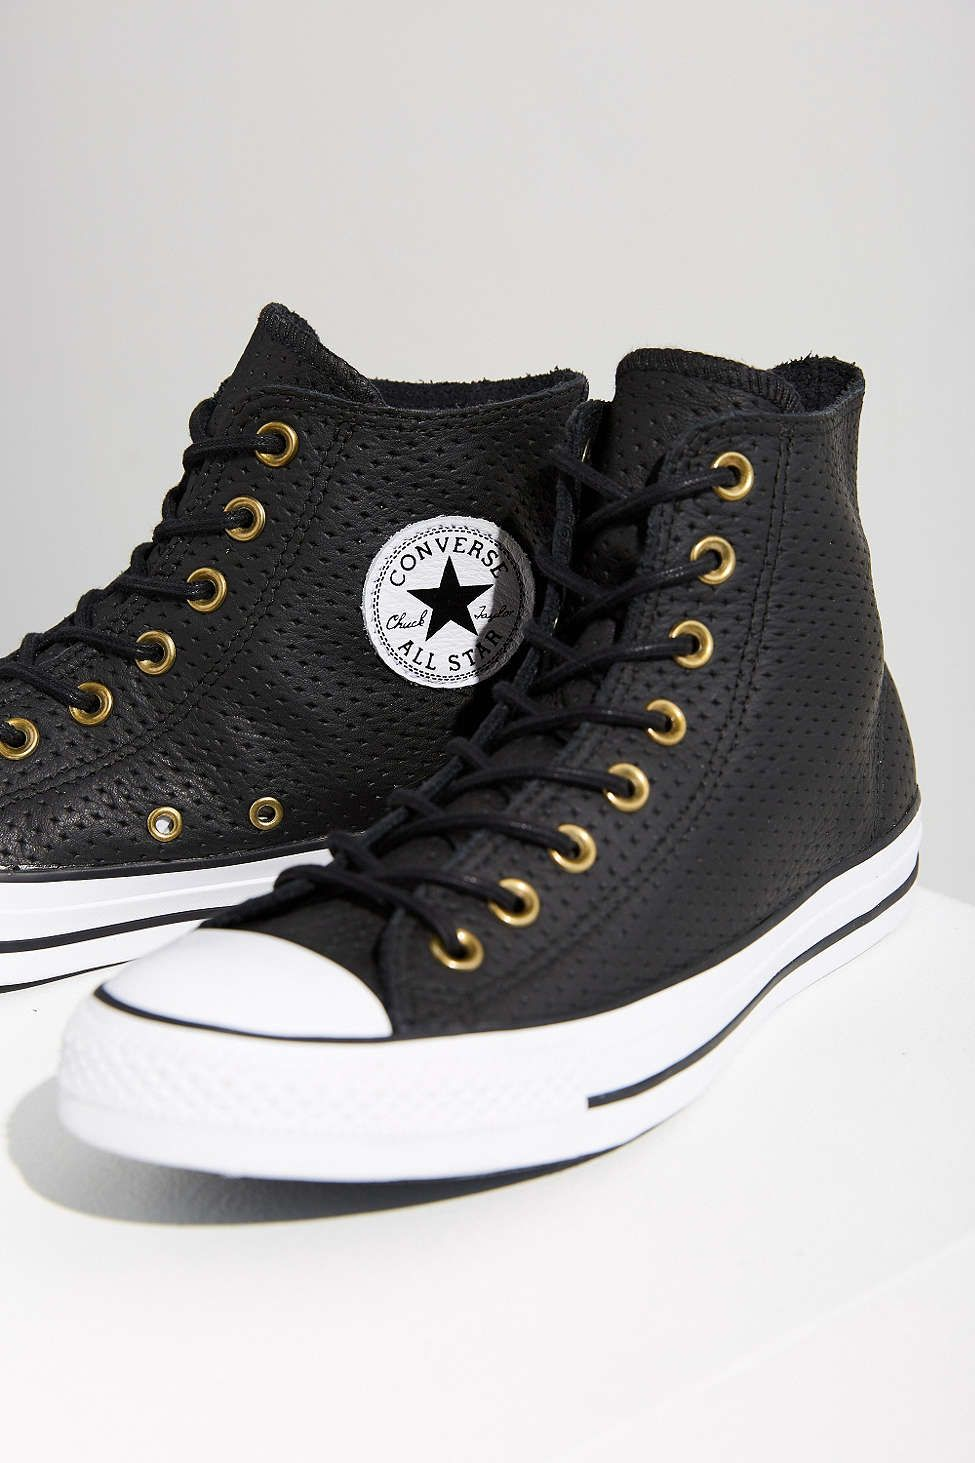 fe2bbbcccee7 Converse Chuck Taylor Perforated Leather Sneaker http   www.95gallery.com